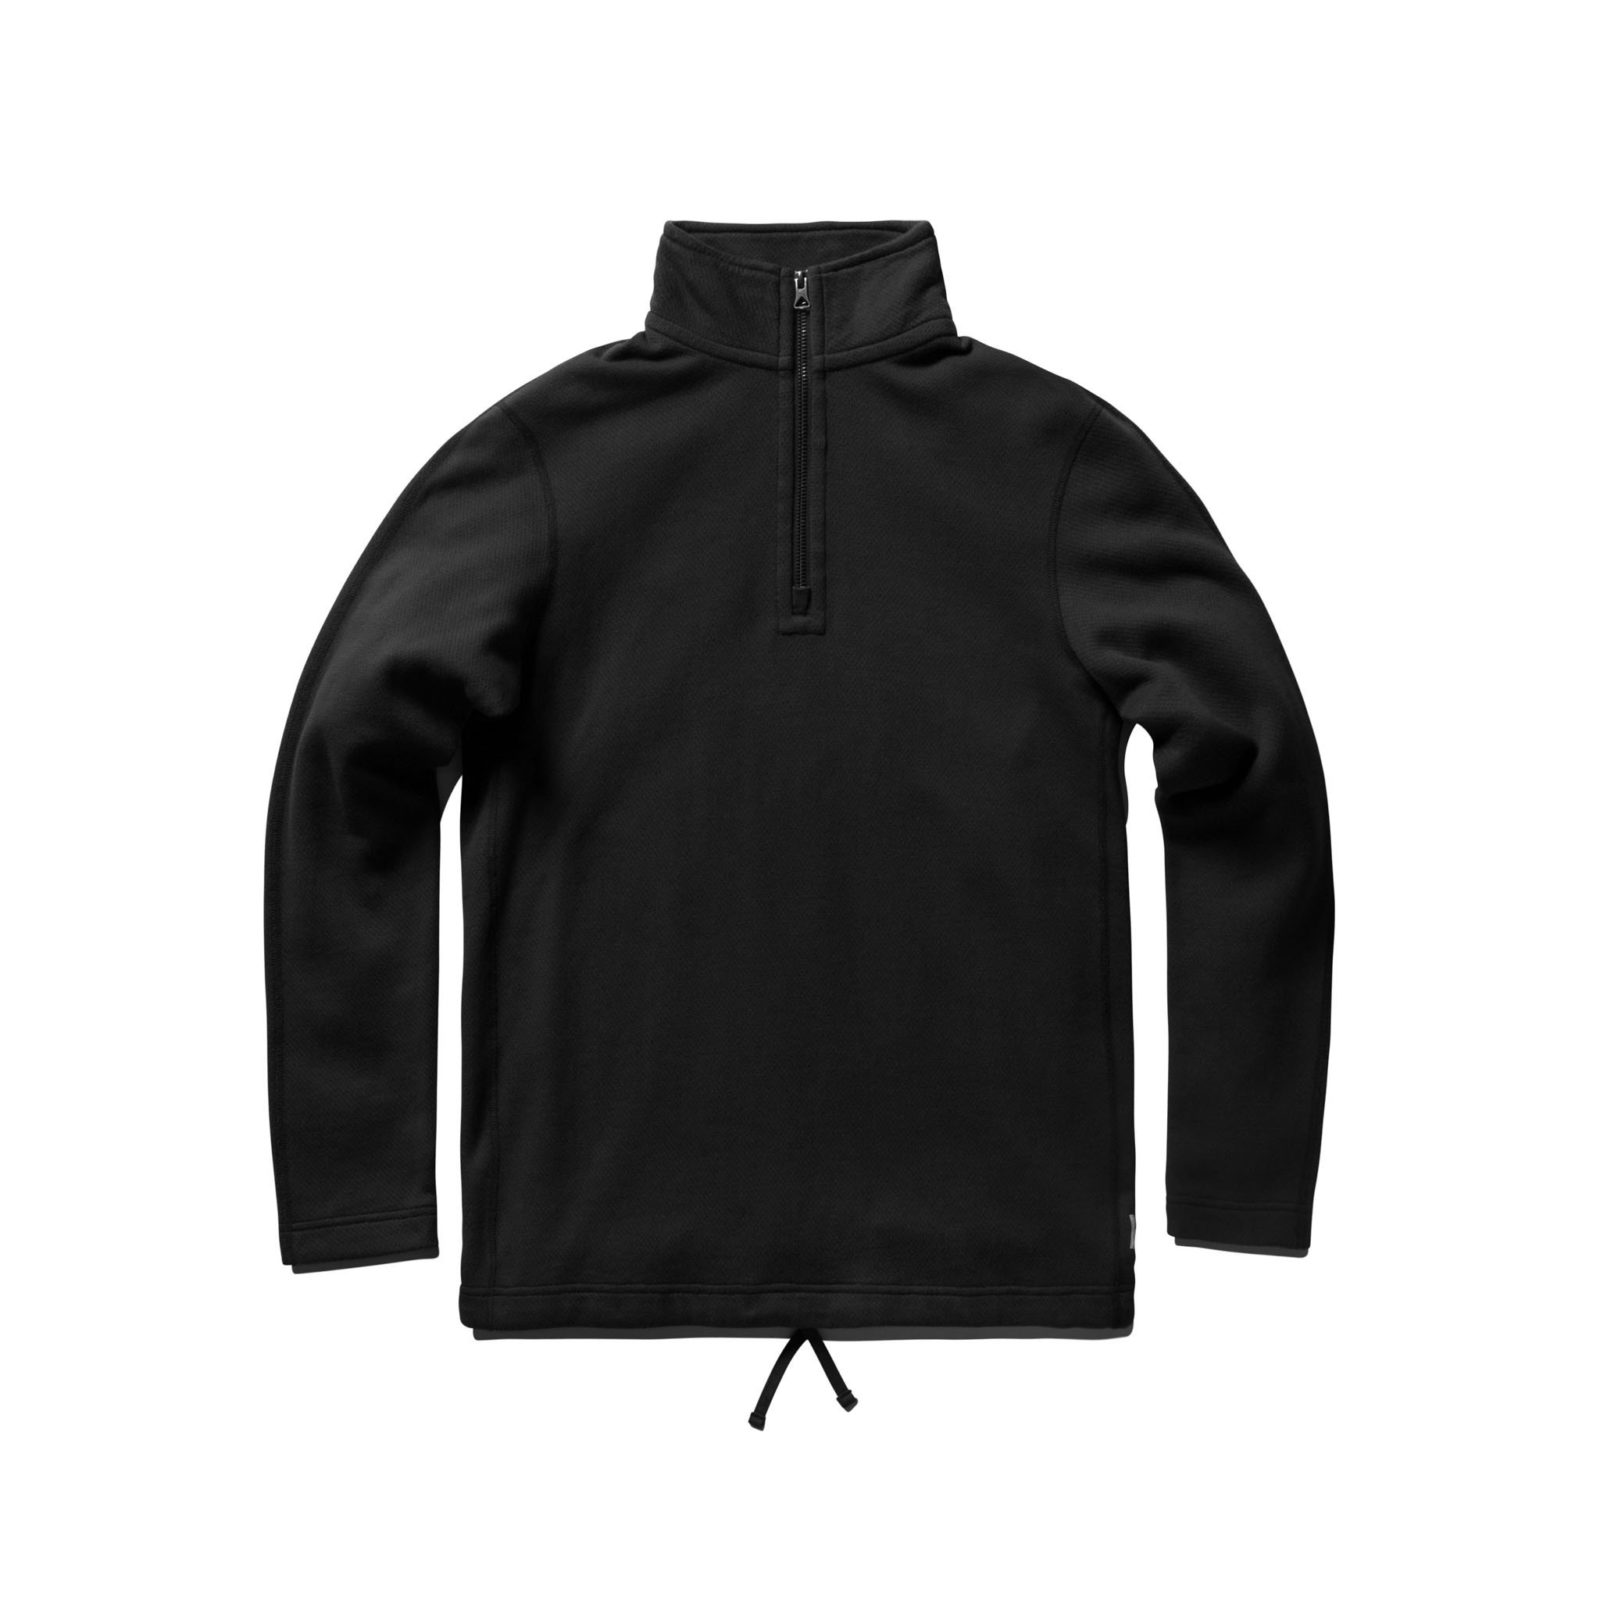 REIGNING CHAMP MESH DOUBLE KNIT HALF ZIP LONG SLEEVE SHIRT